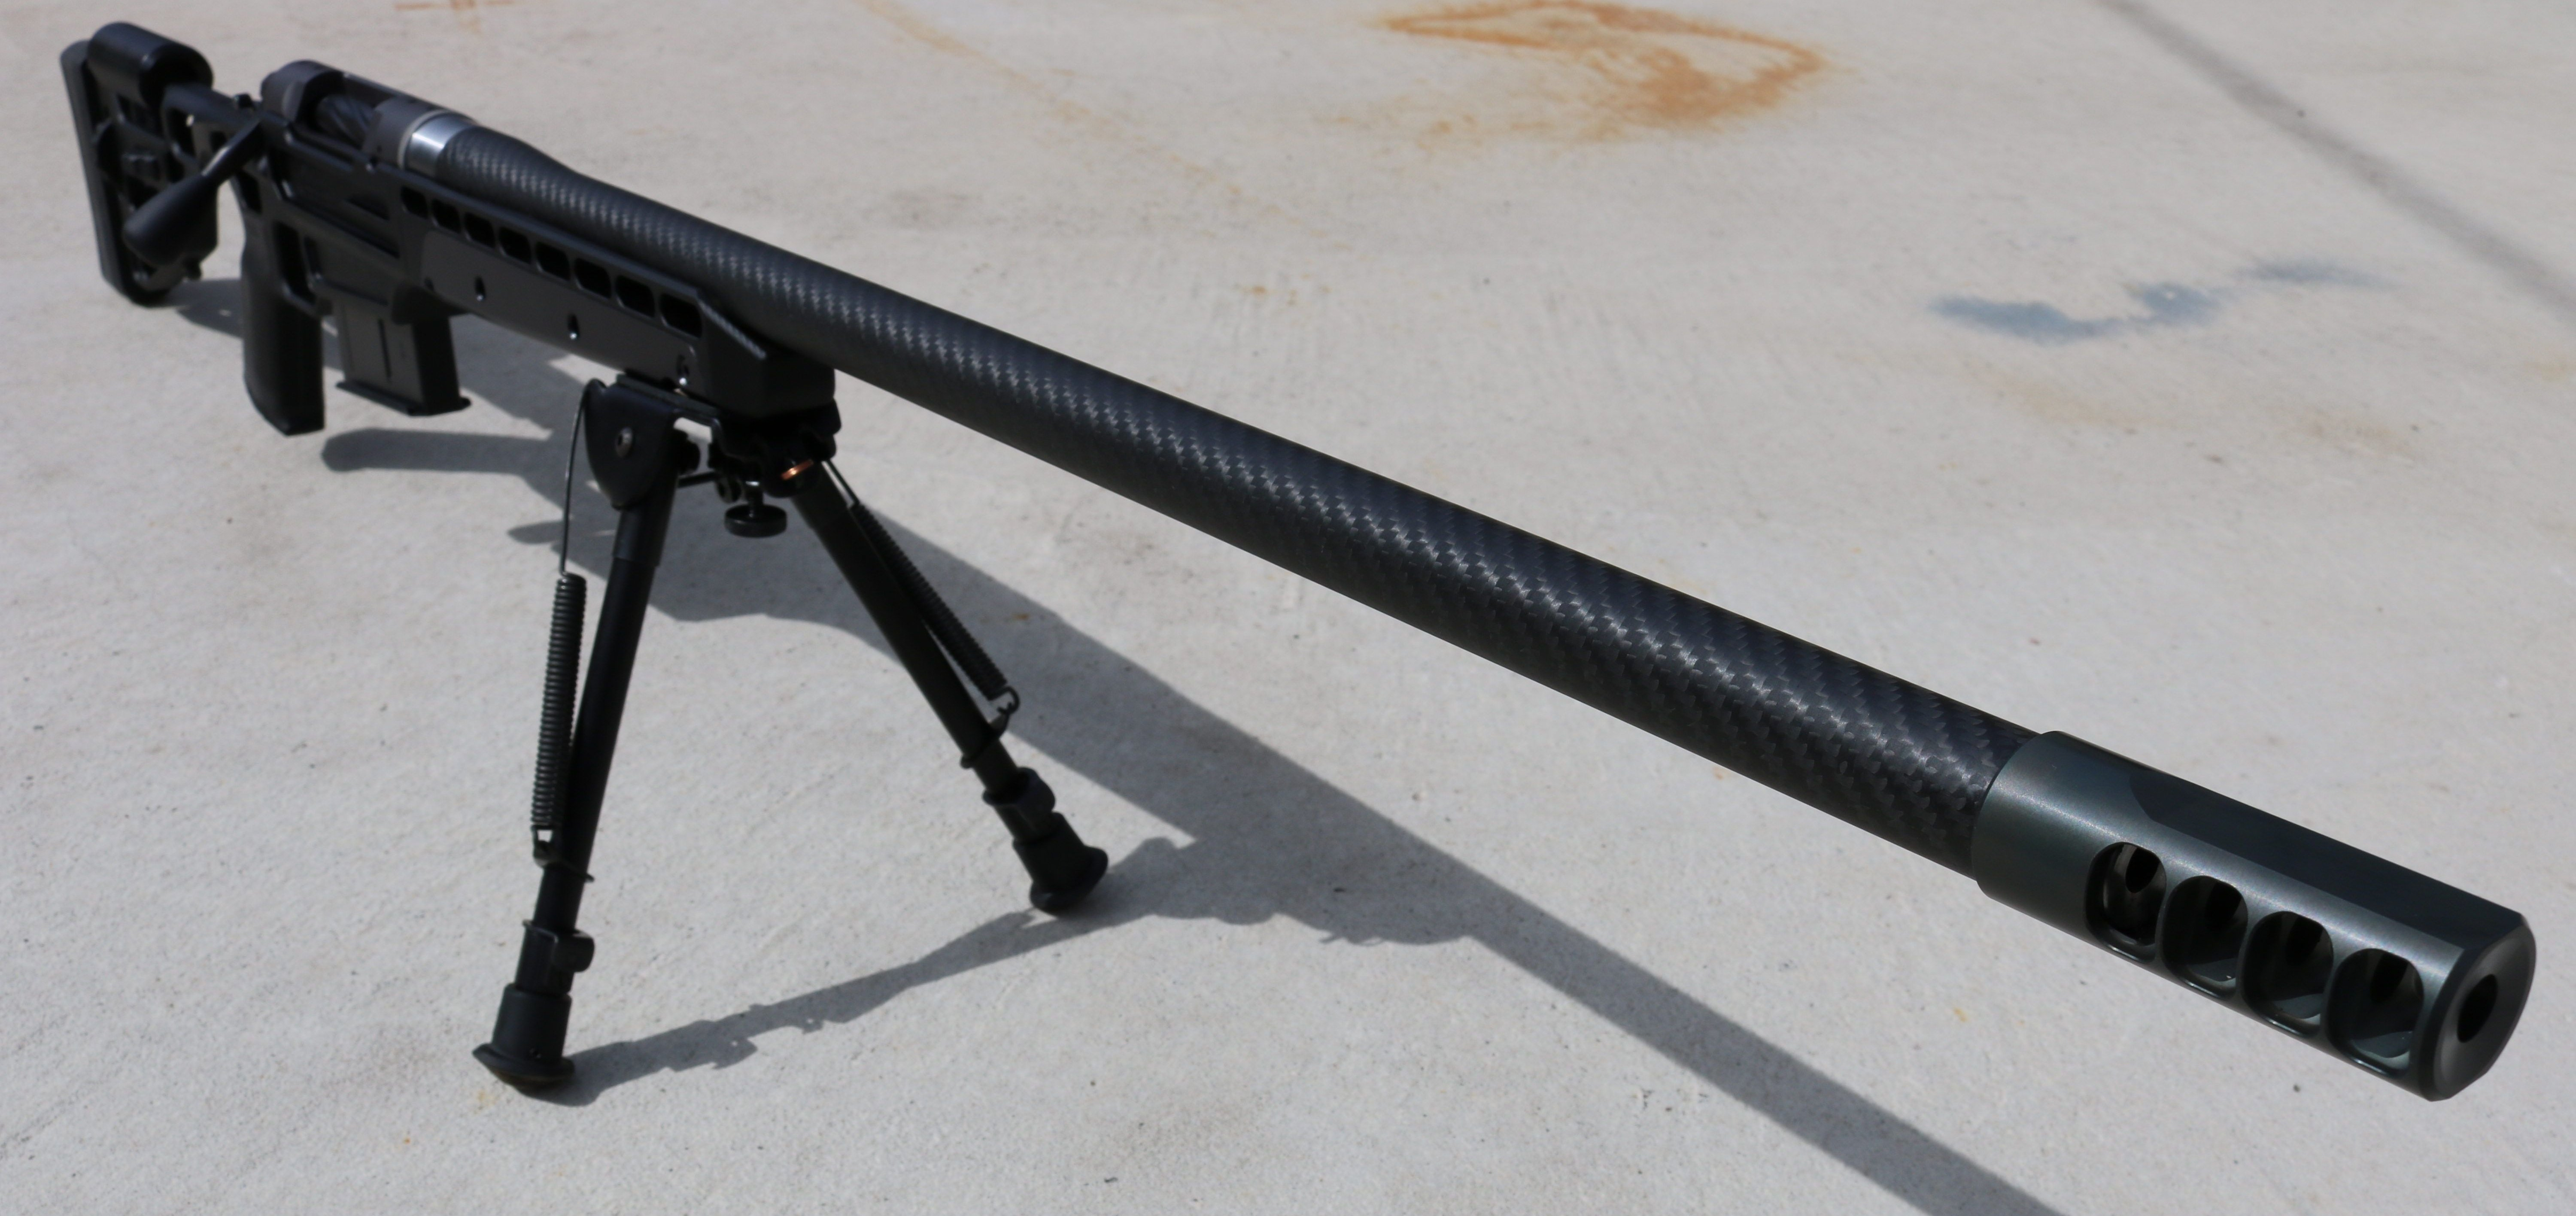 338LM - Lightweight precision rifle